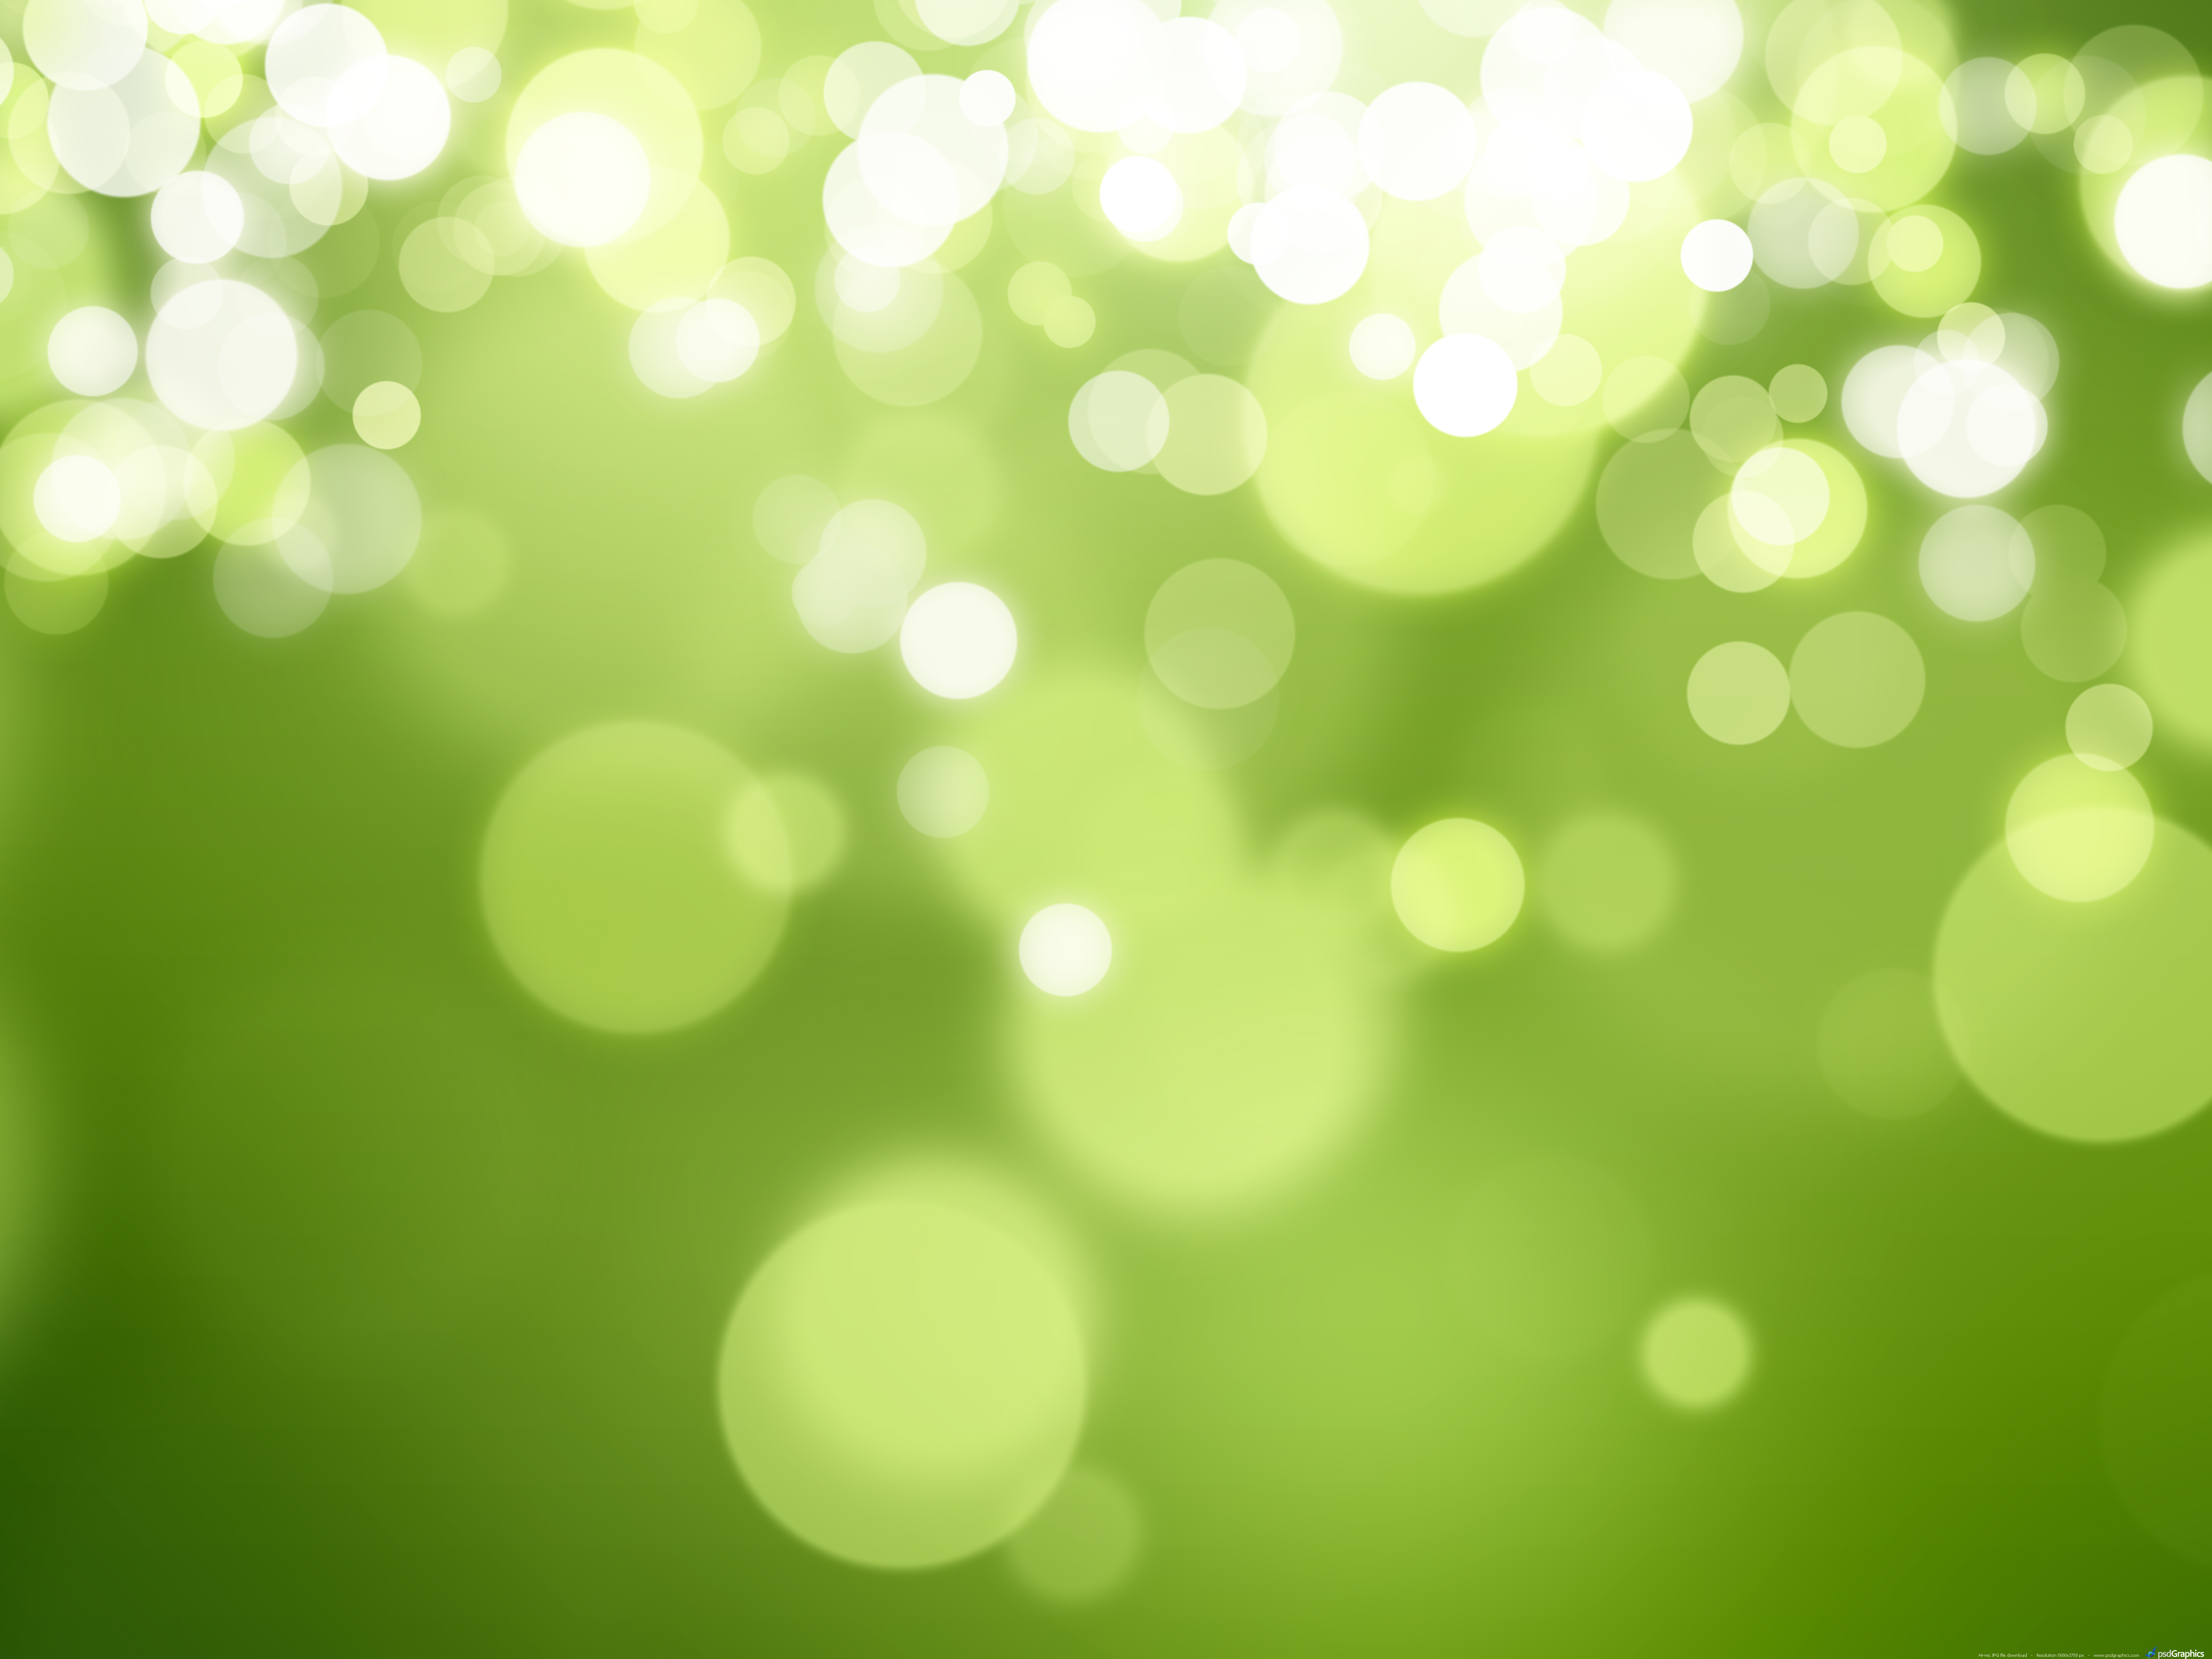 Abstract green nature background PSDGraphics 5000x3750